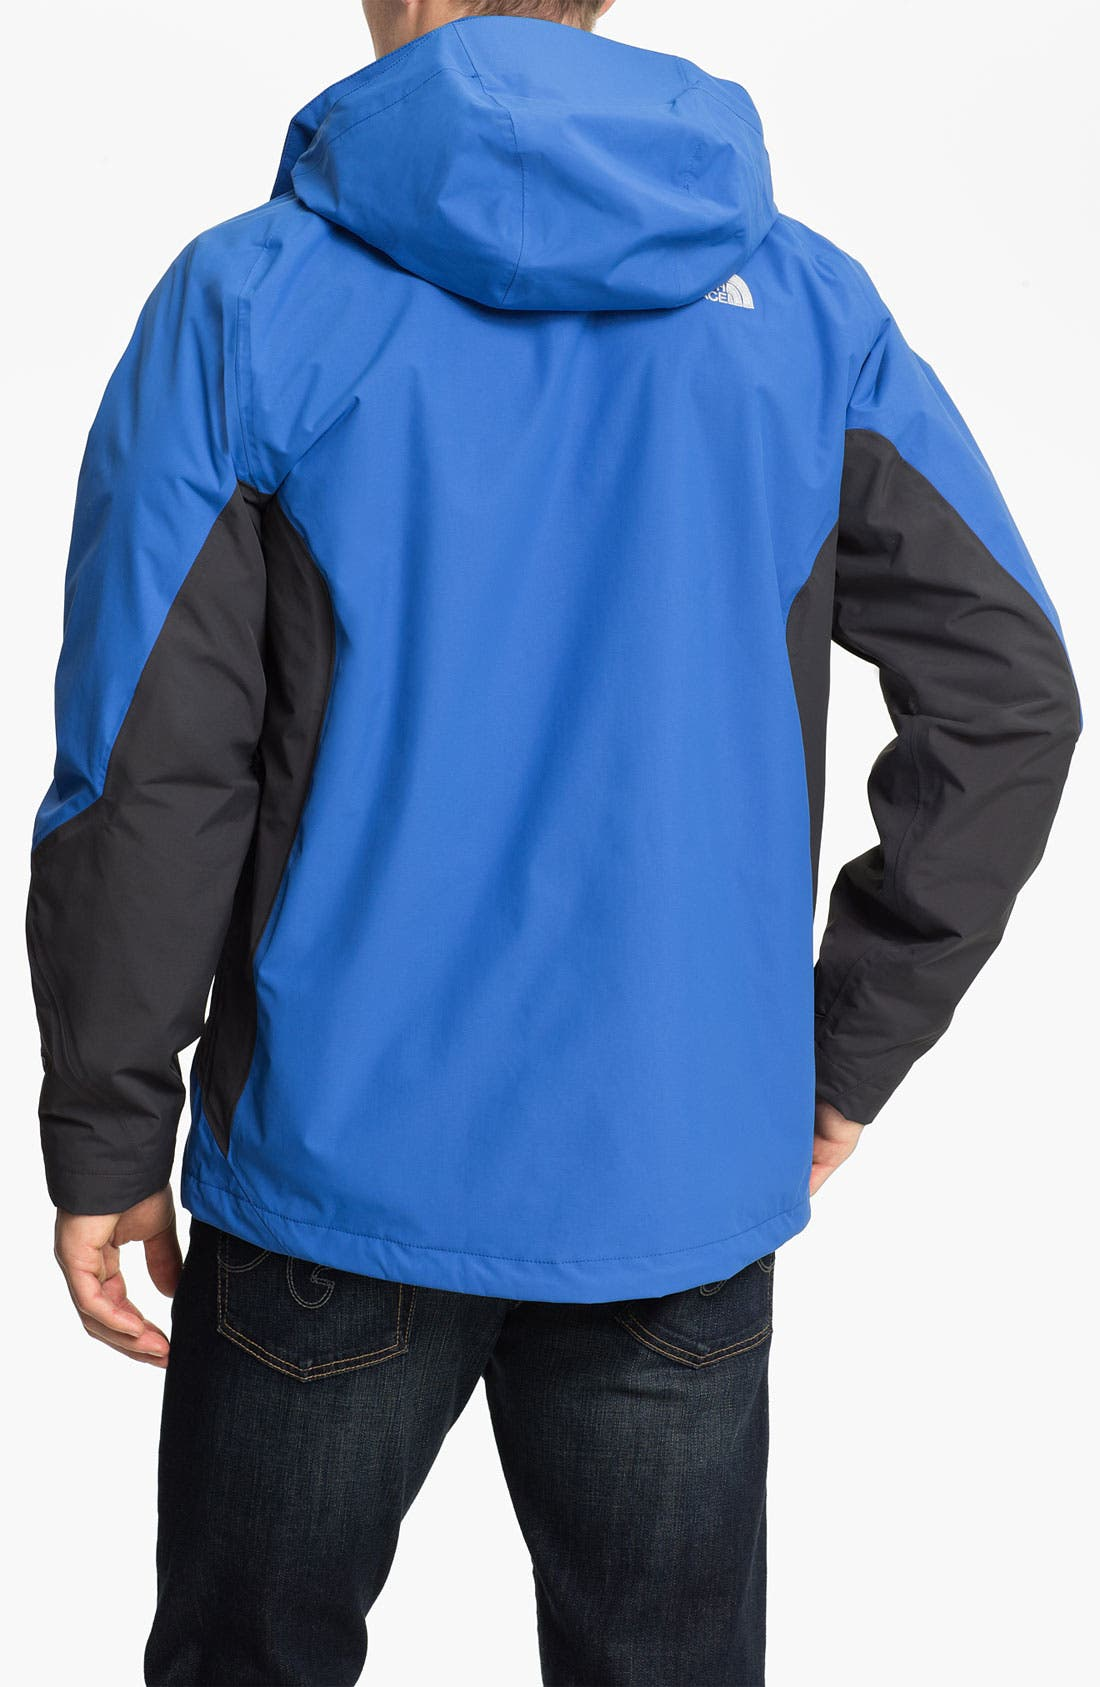 Alternate Image 2  - The North Face 'Atlas' TriClimate® 3-in-1 Jacket